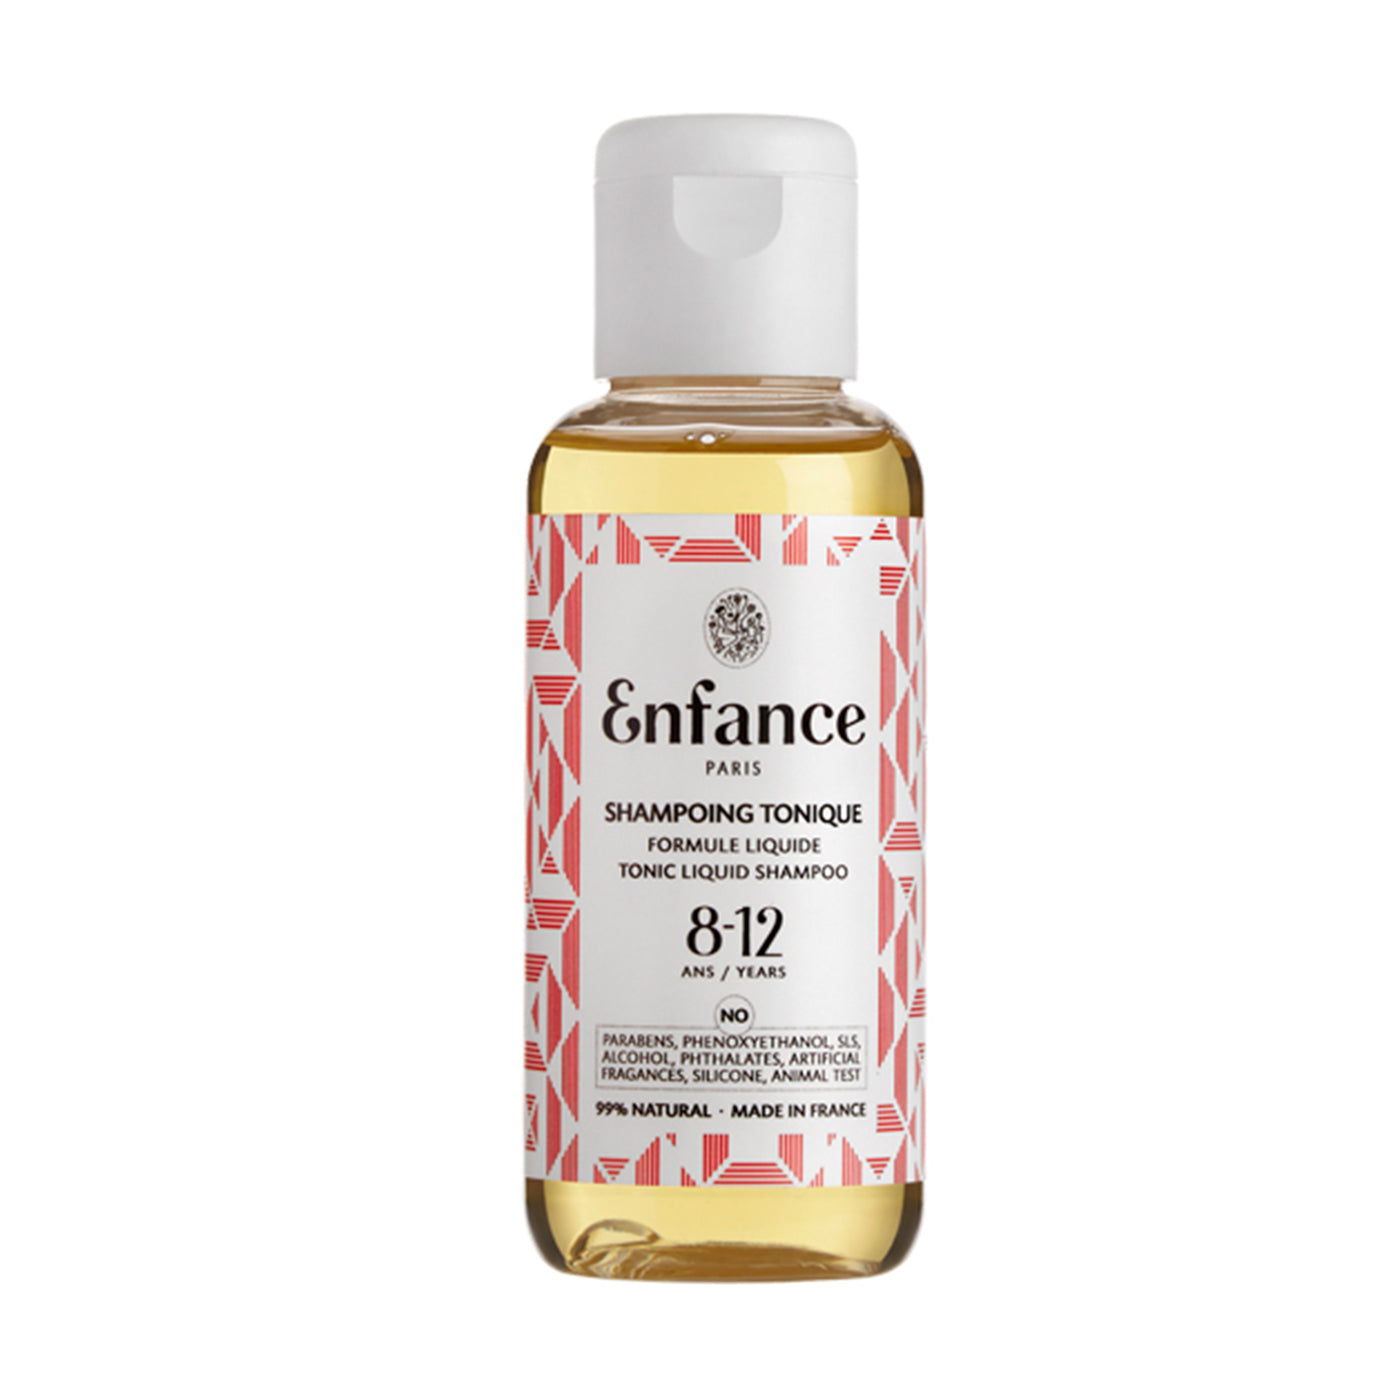 Enfance Paris Tonic Liquid Shampoo 8-12 Years 20475888500847